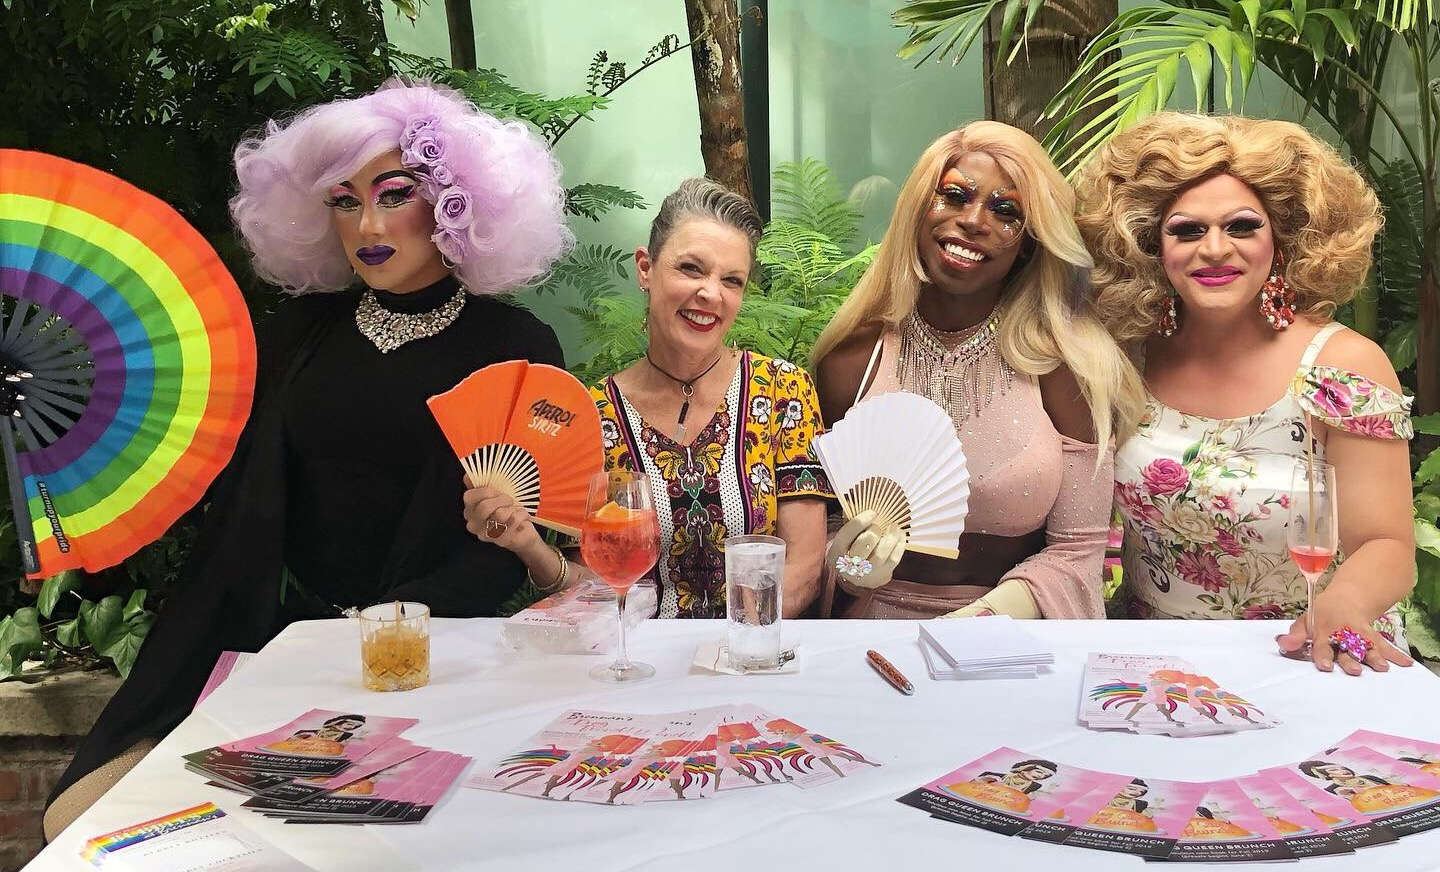 Promotion for Drag Queen Brunch Book Launch Party